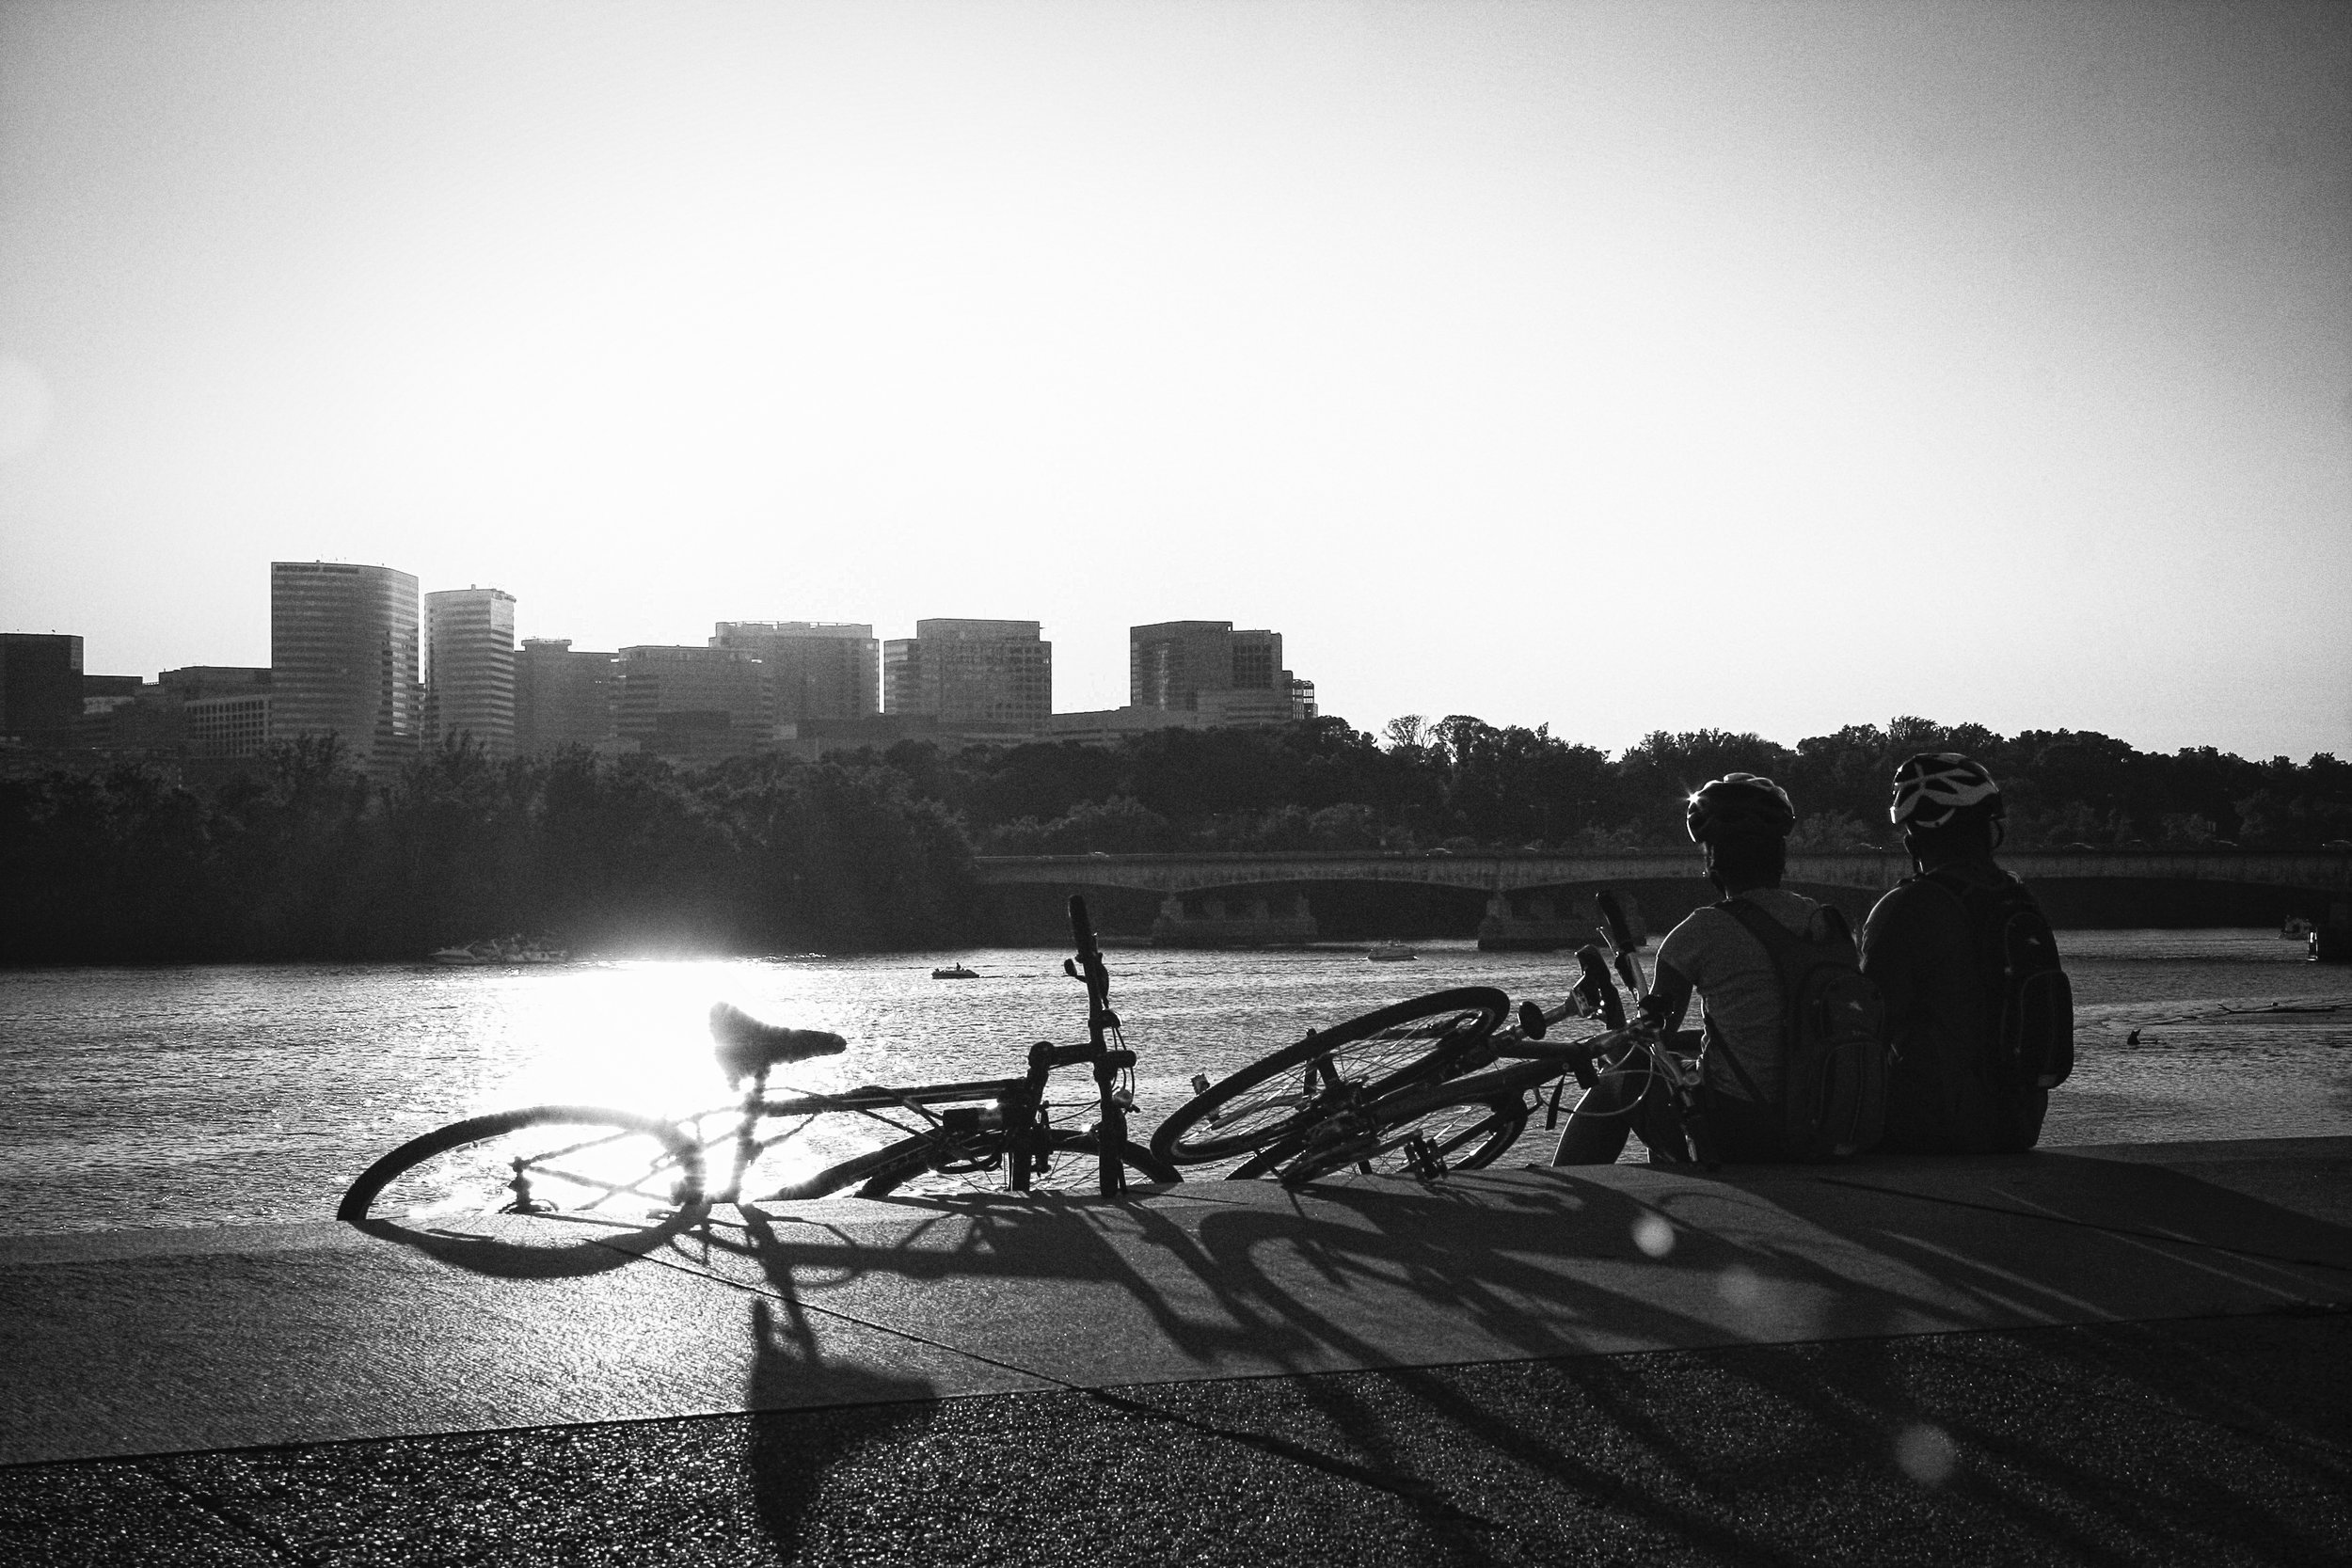 Cyclists on the bank of the Potomac, Washington, DC.